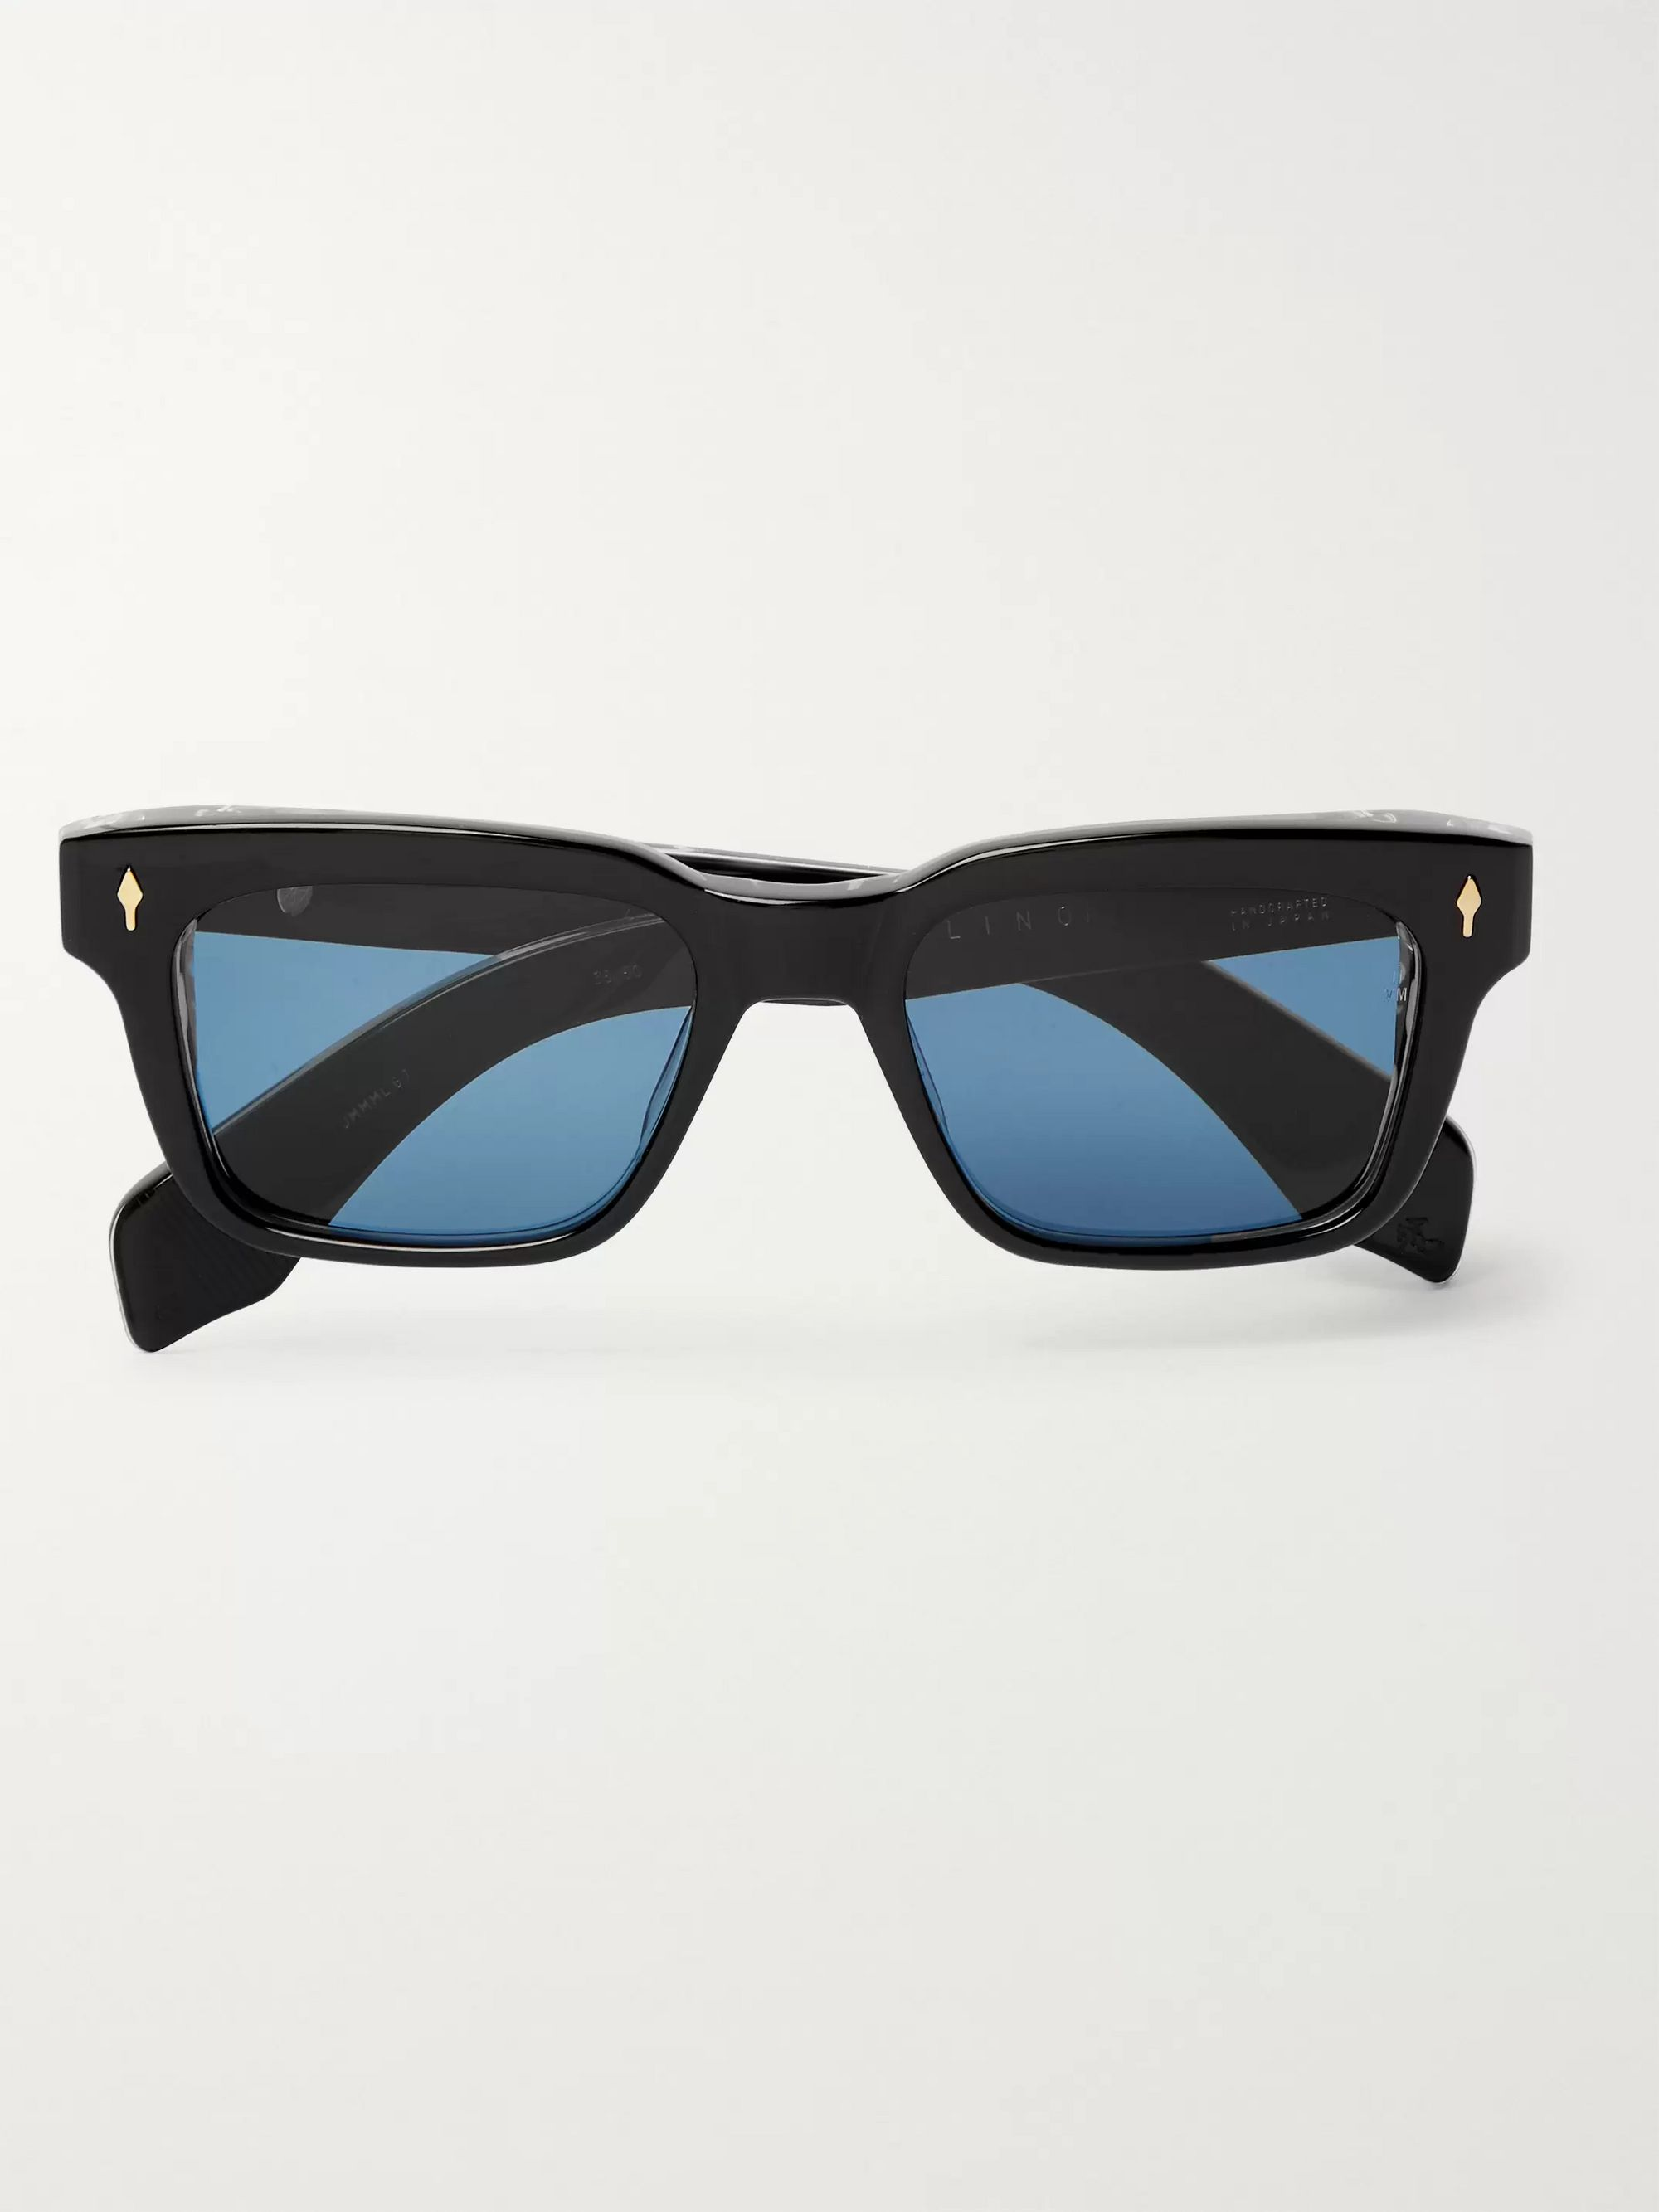 Jacques Marie Mage Molino Square-Frame Acetate and Gold-Tone Sunglasses